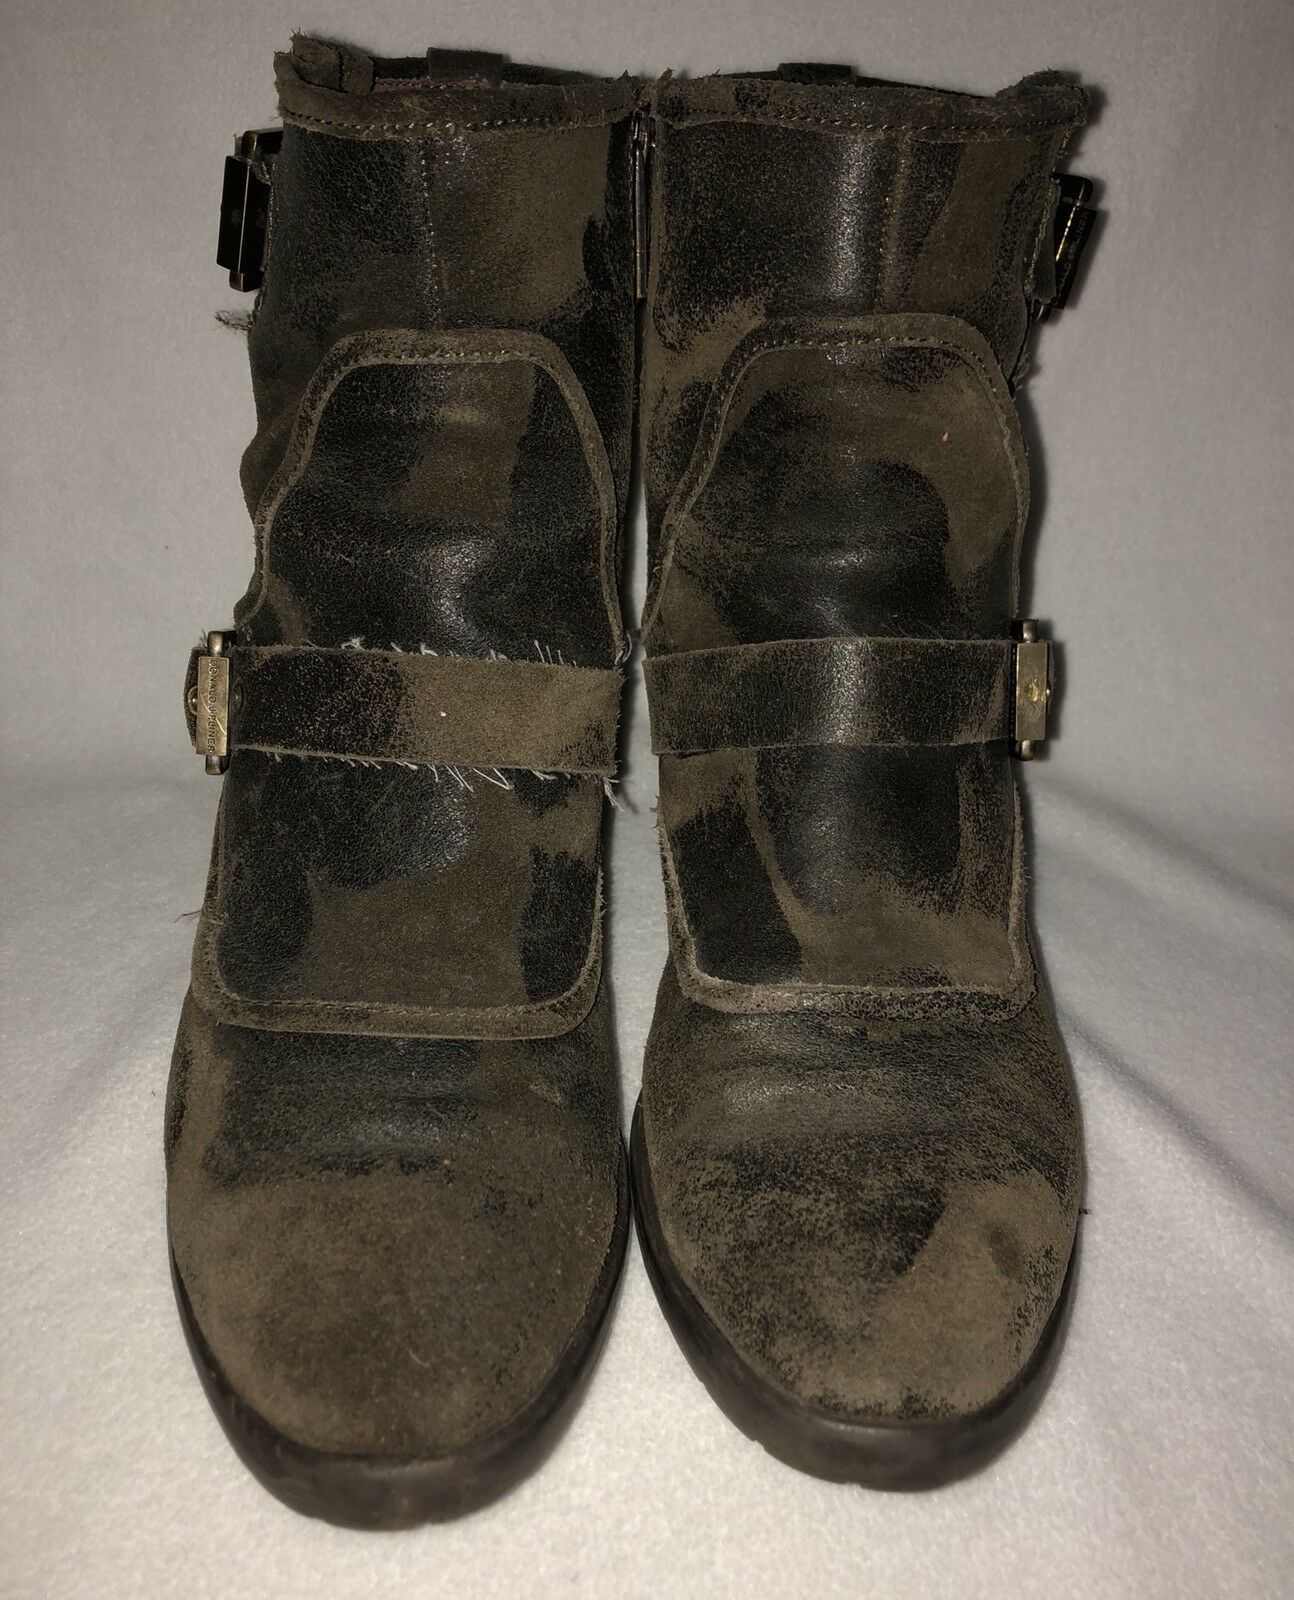 DONALD DELTA J. PLINER DELTA DONALD CAMO OLIVE GREEN DISTRESSED LEATHER ZIP UP BOOTS 8 M RARE 6c492b